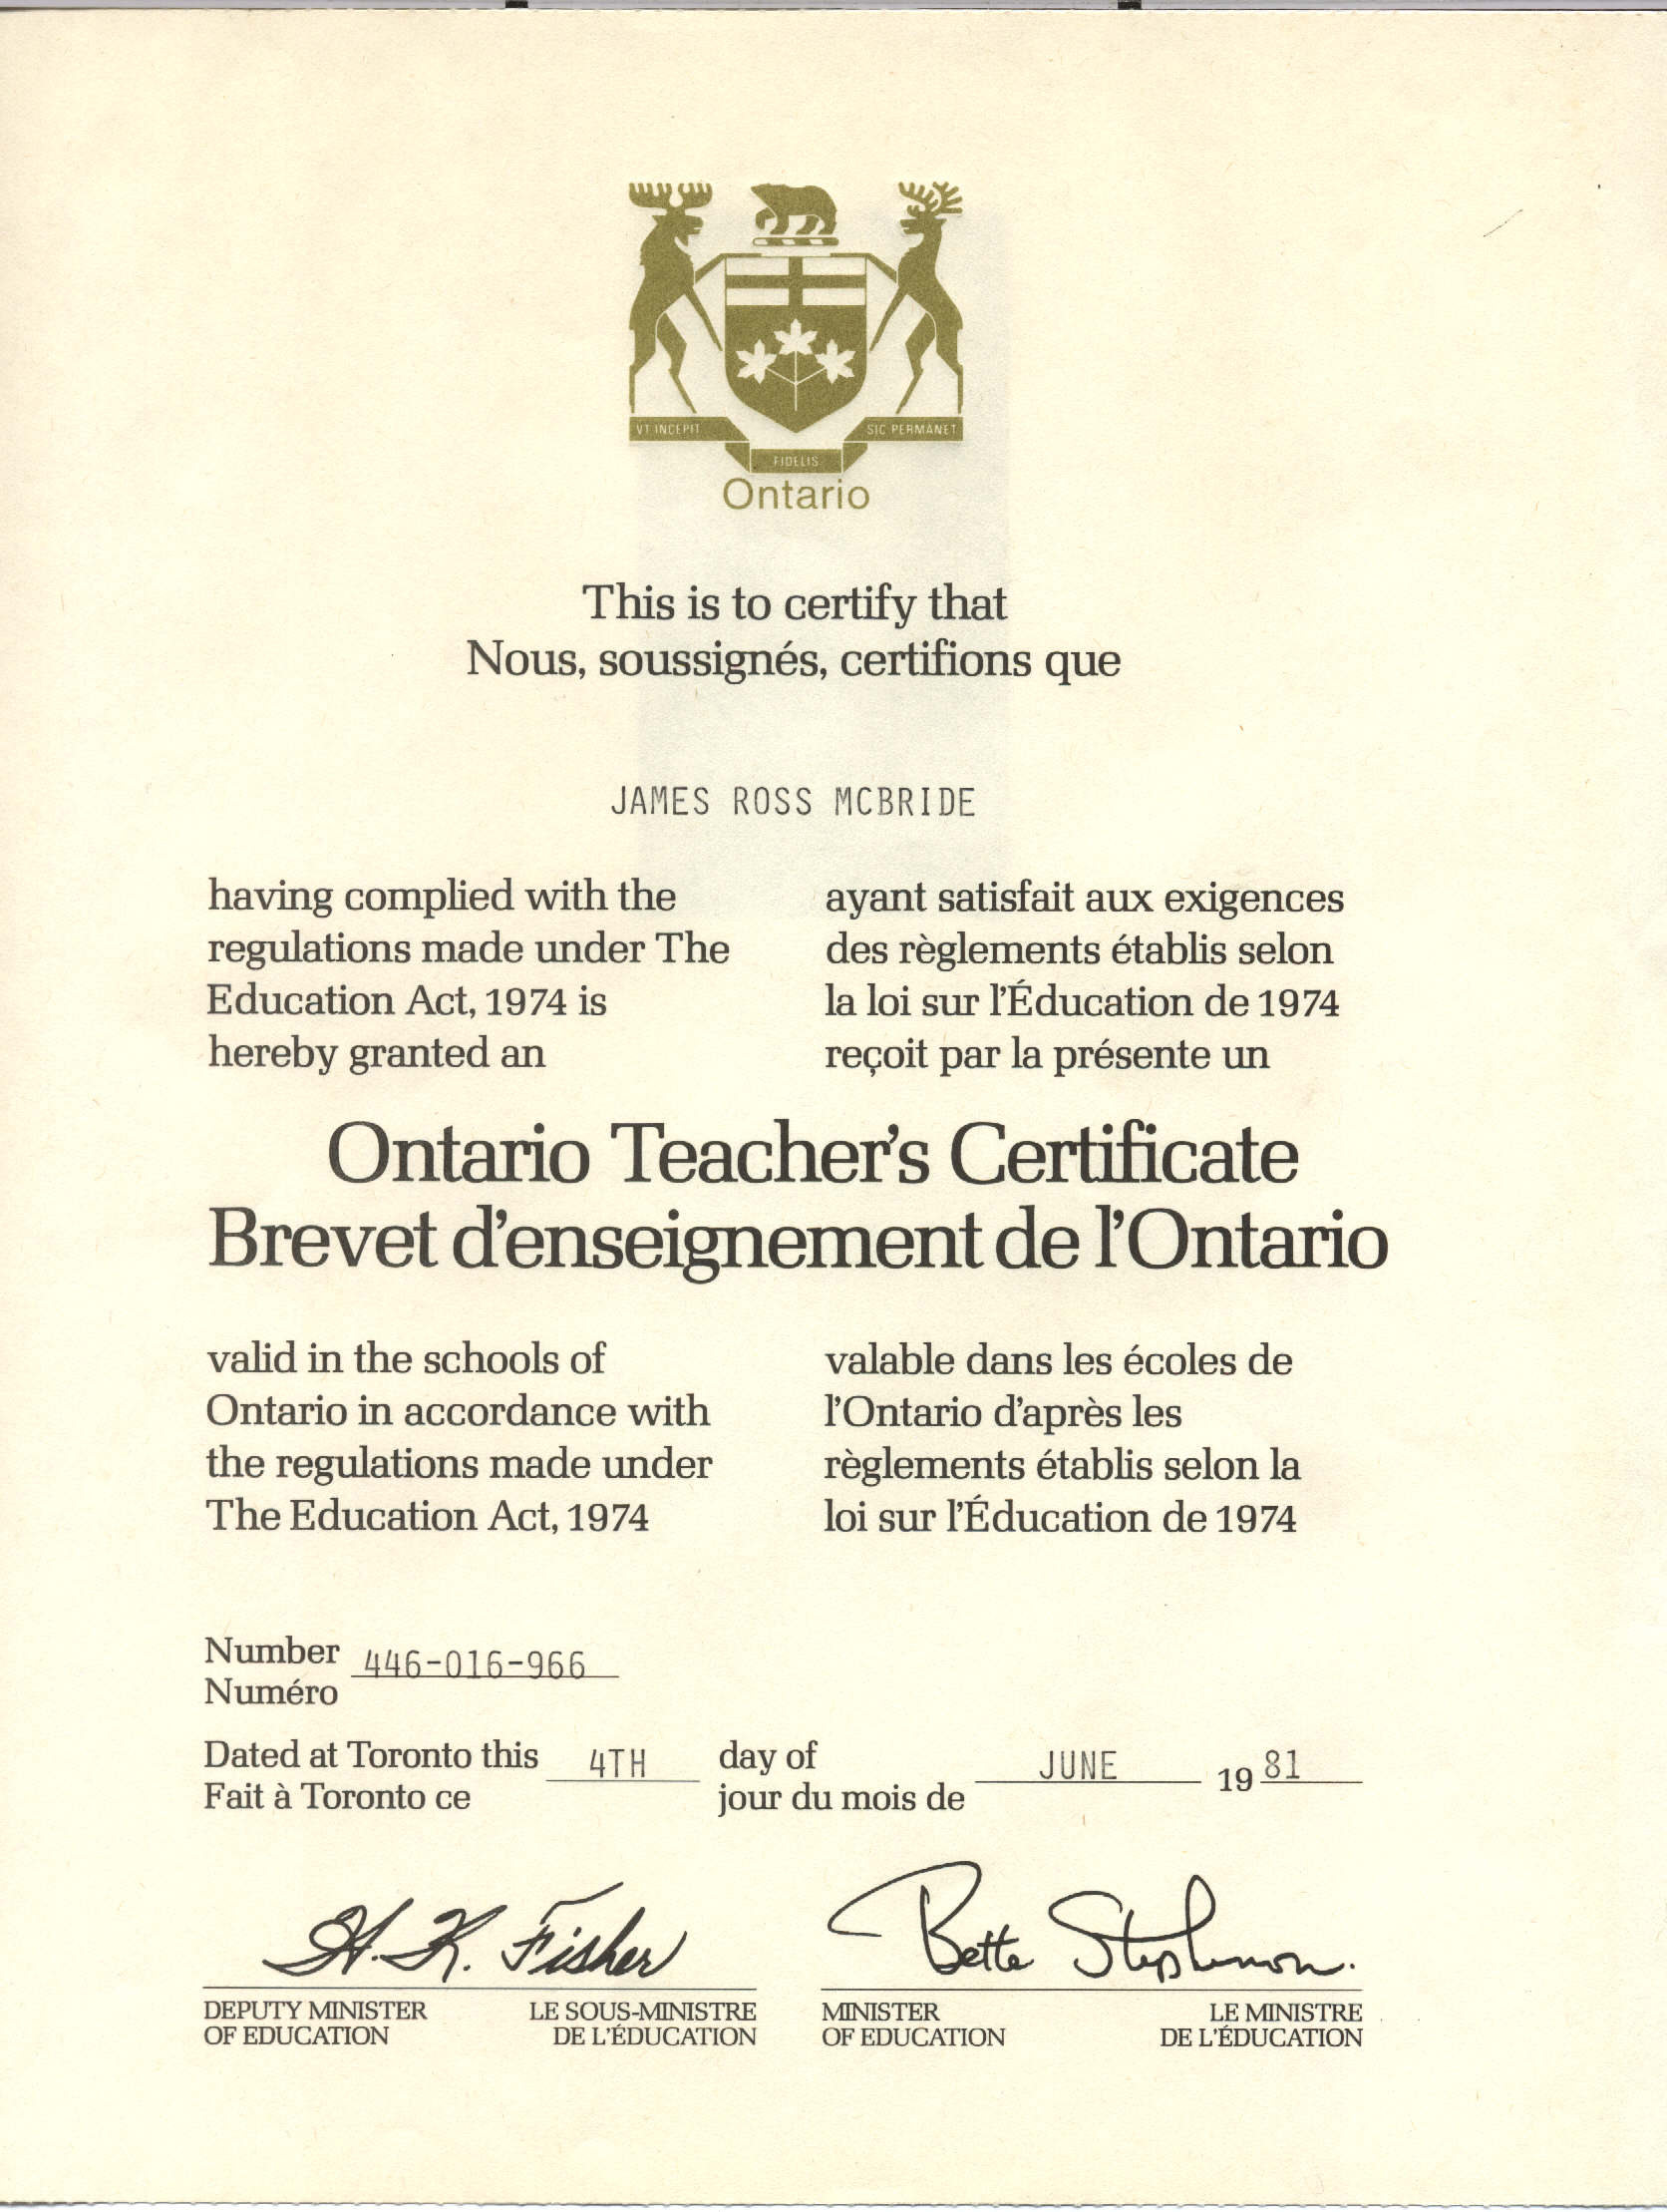 Ontario Ministry of Education, Ontario Teachers Certificate